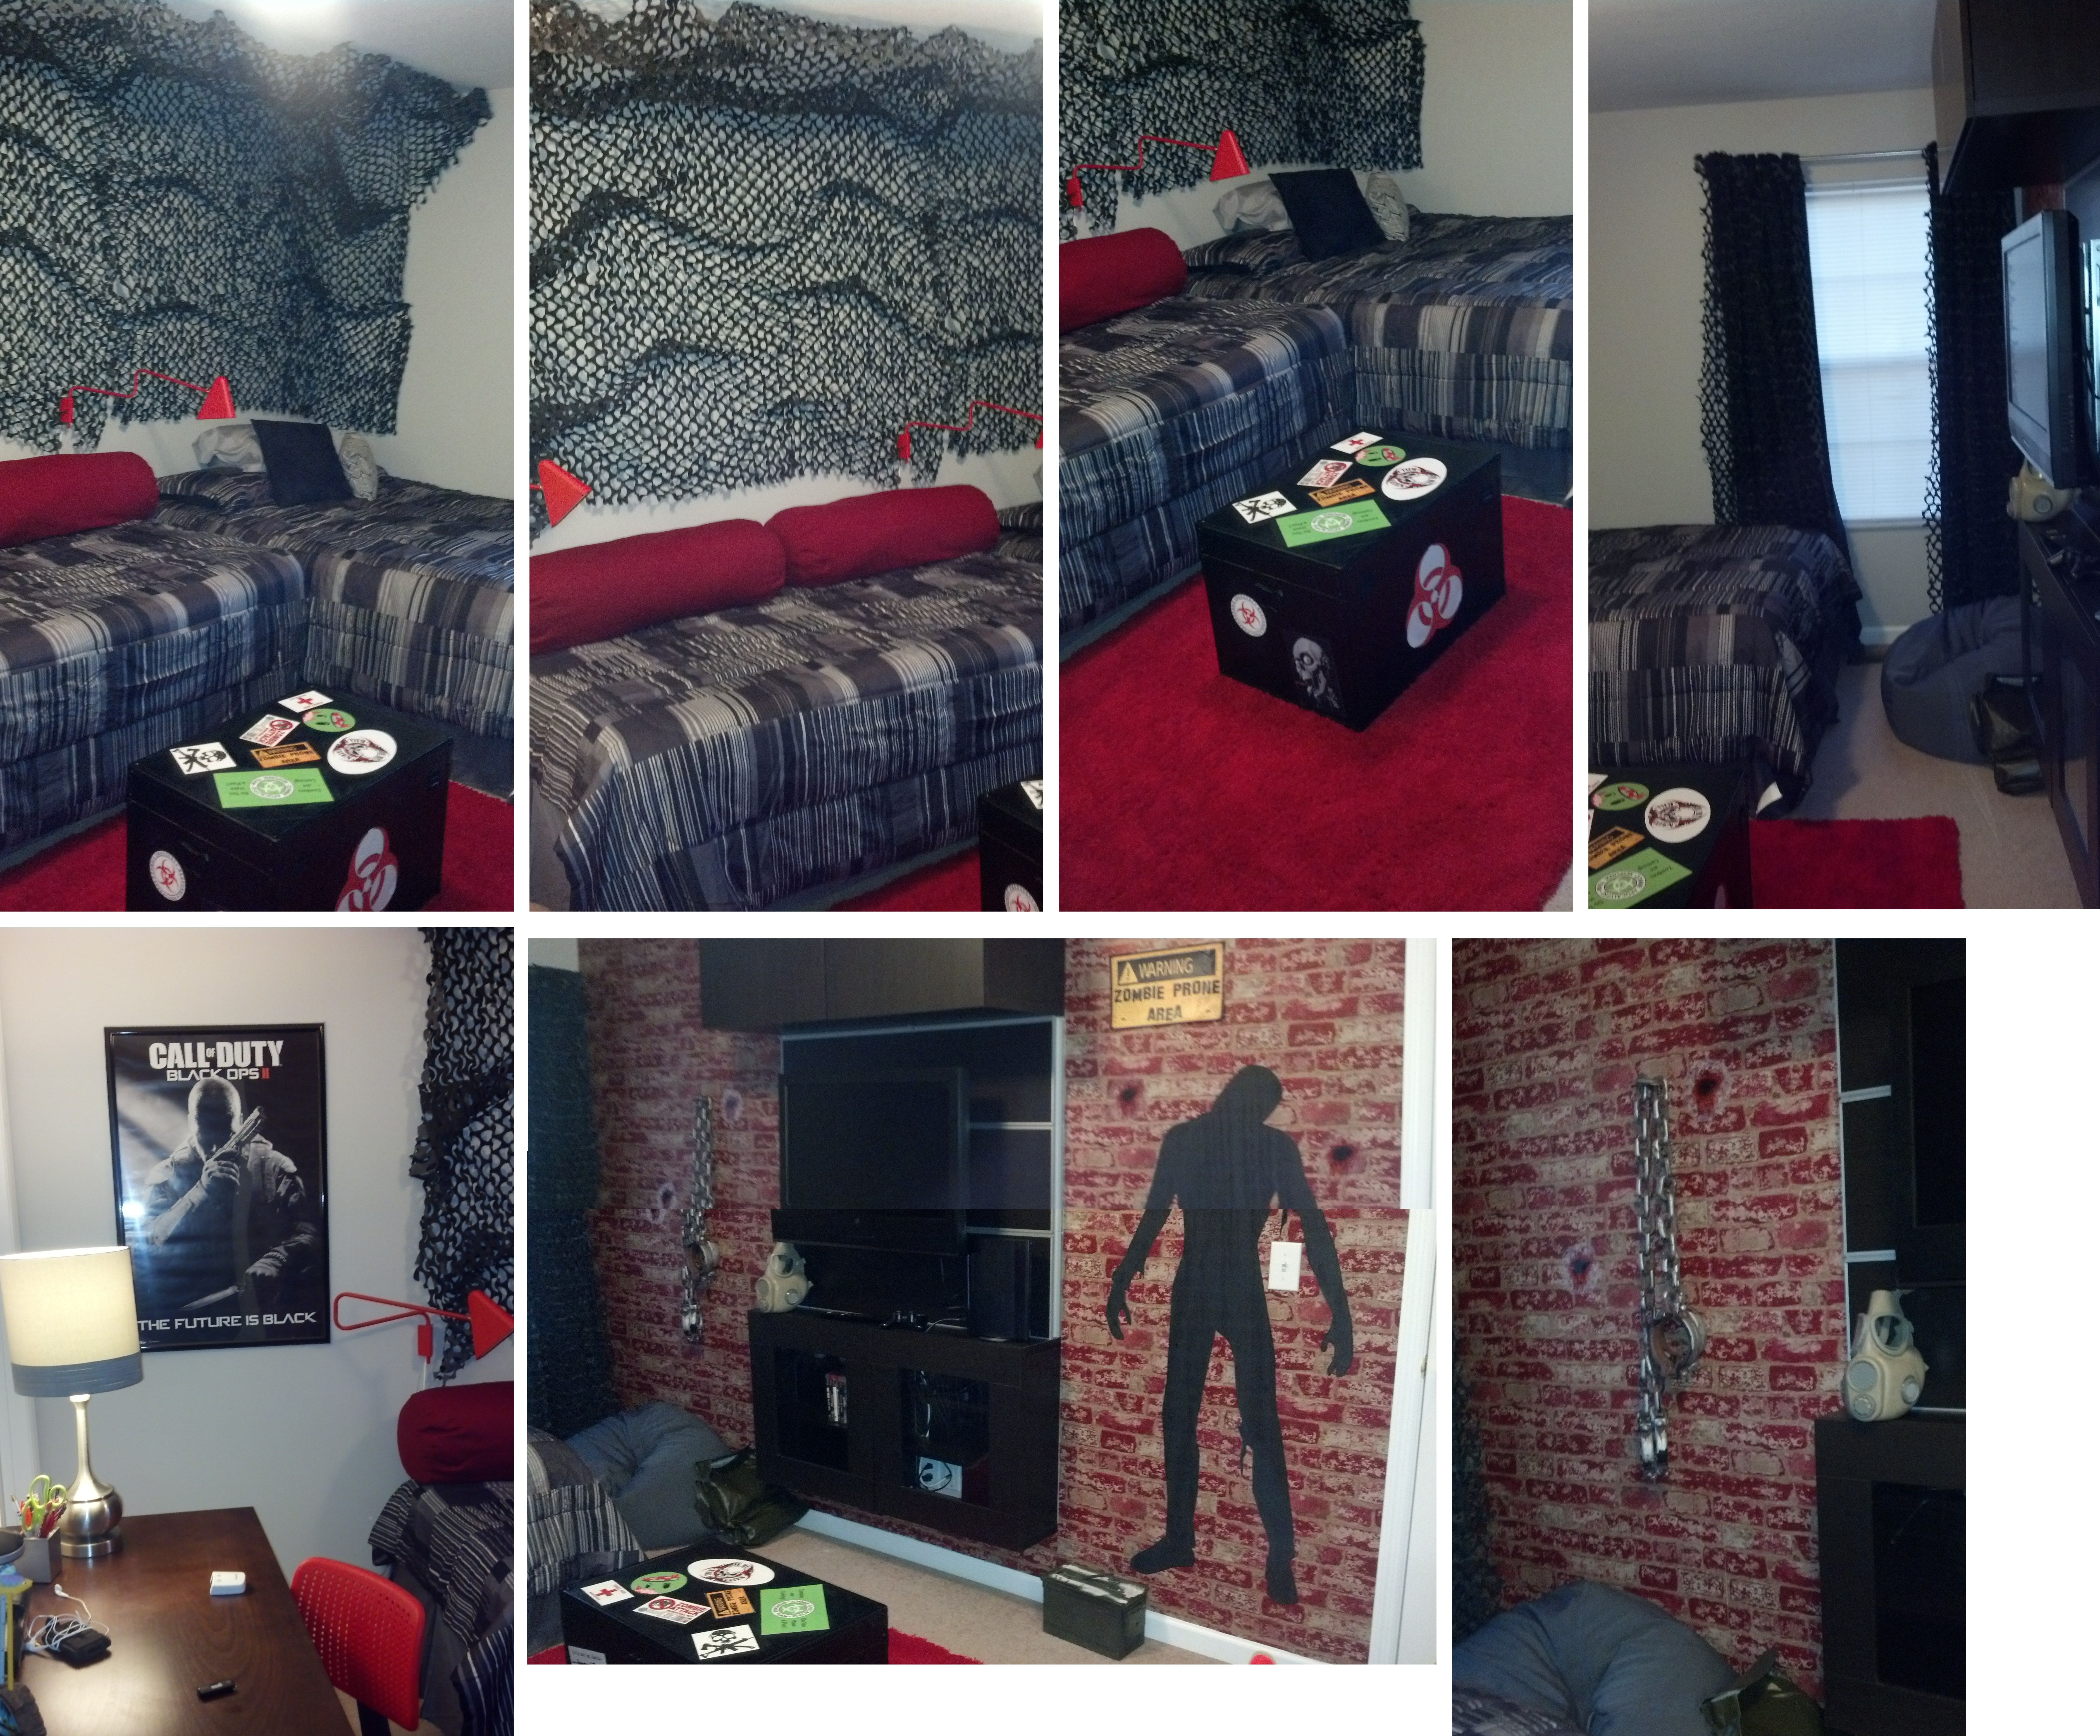 Delectable 90 call of duty black ops room decor for Black ops 3 decorations